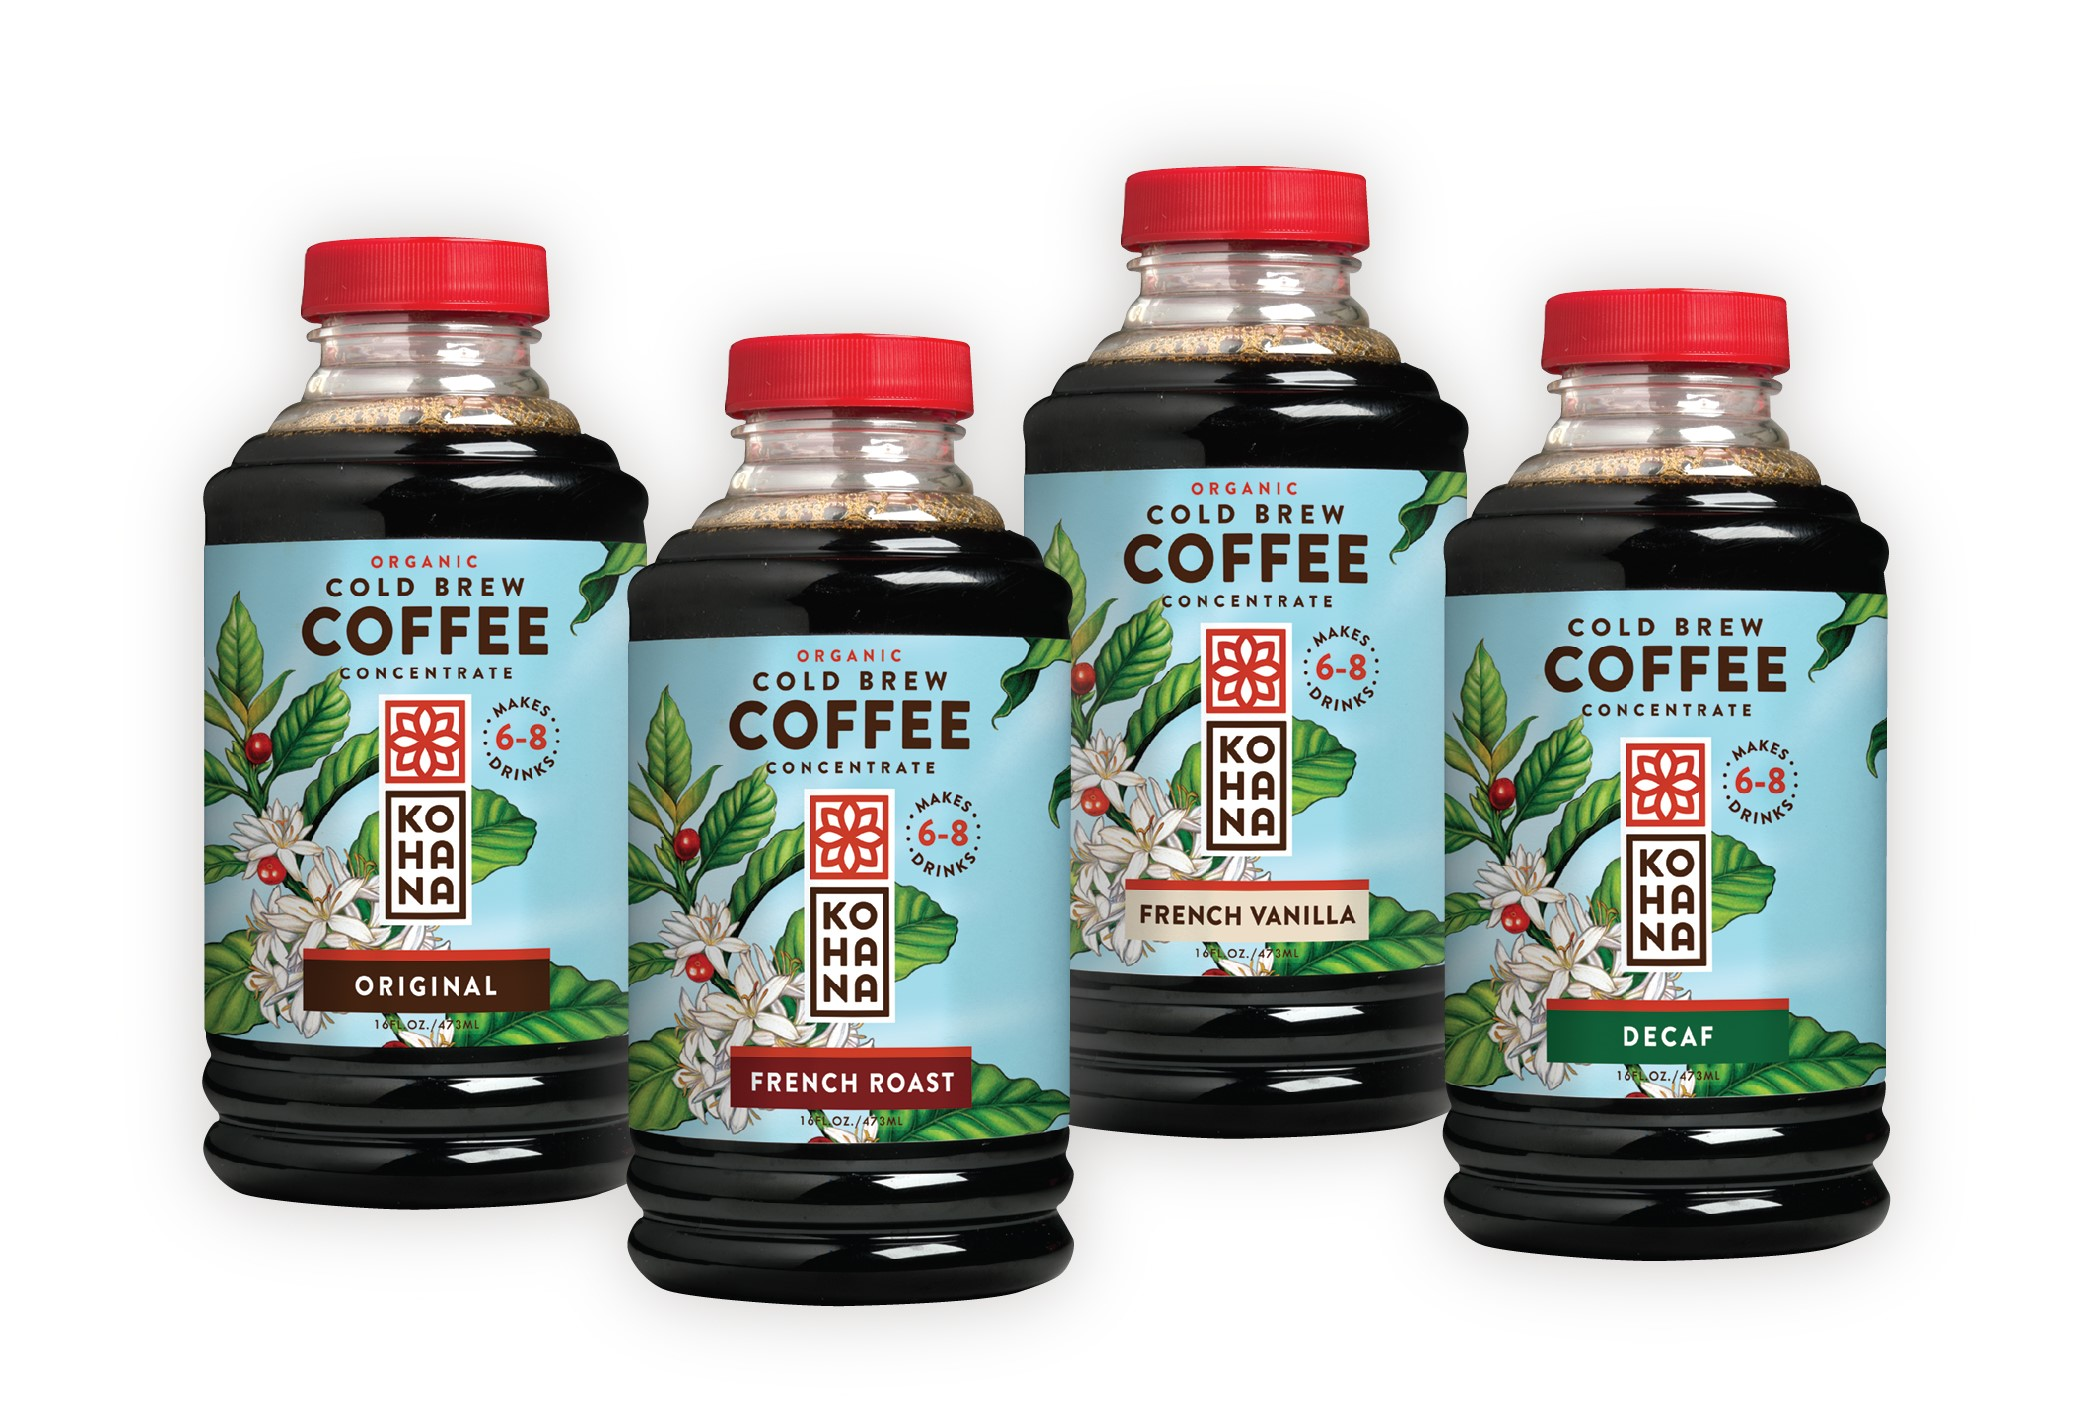 Kohana Coffee Expands Shelf Stable Cold Brew Line